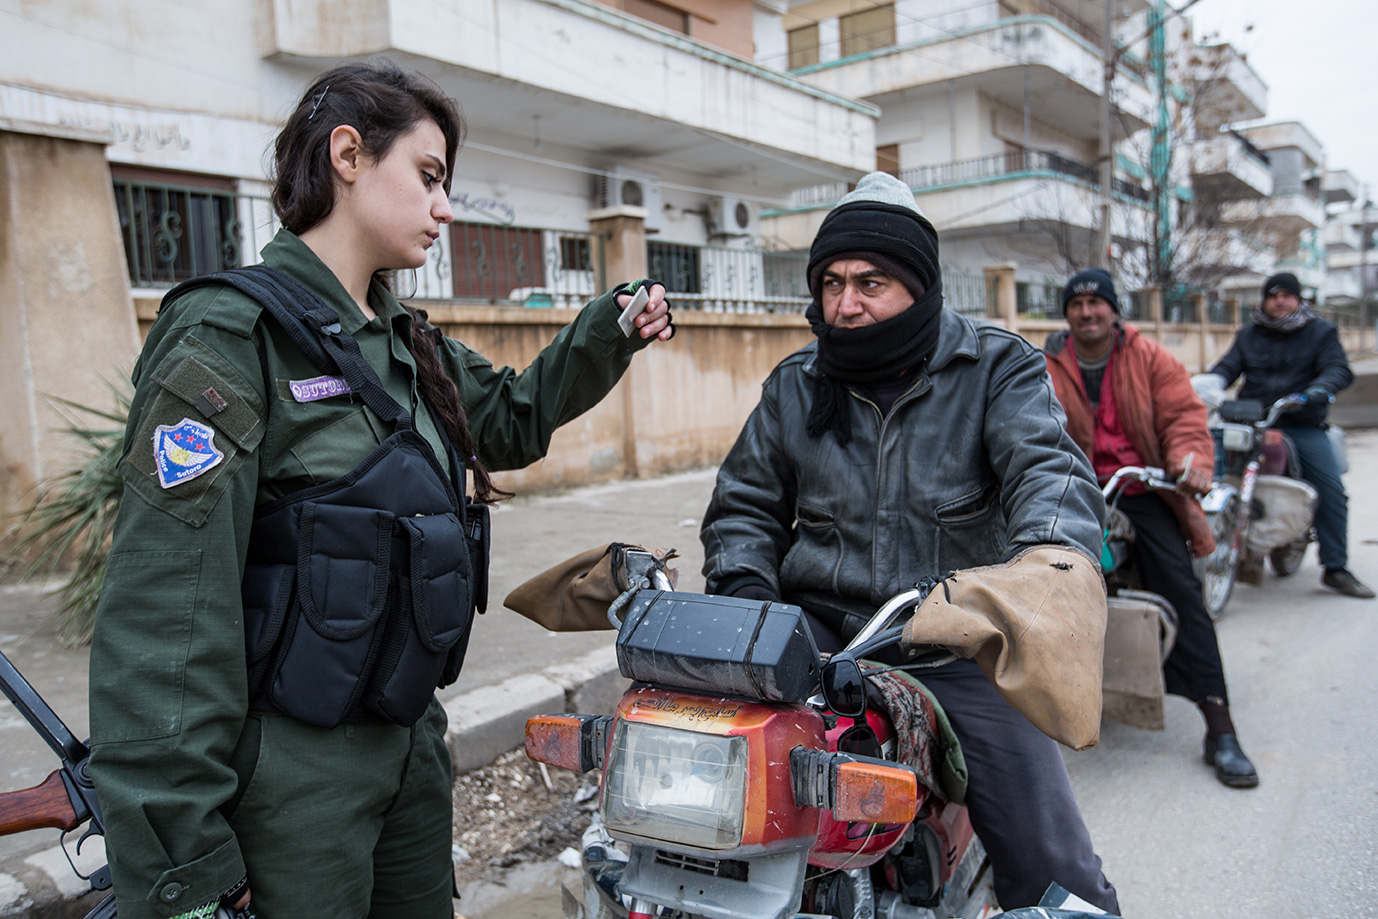 christian female fighter check point hasaka syria